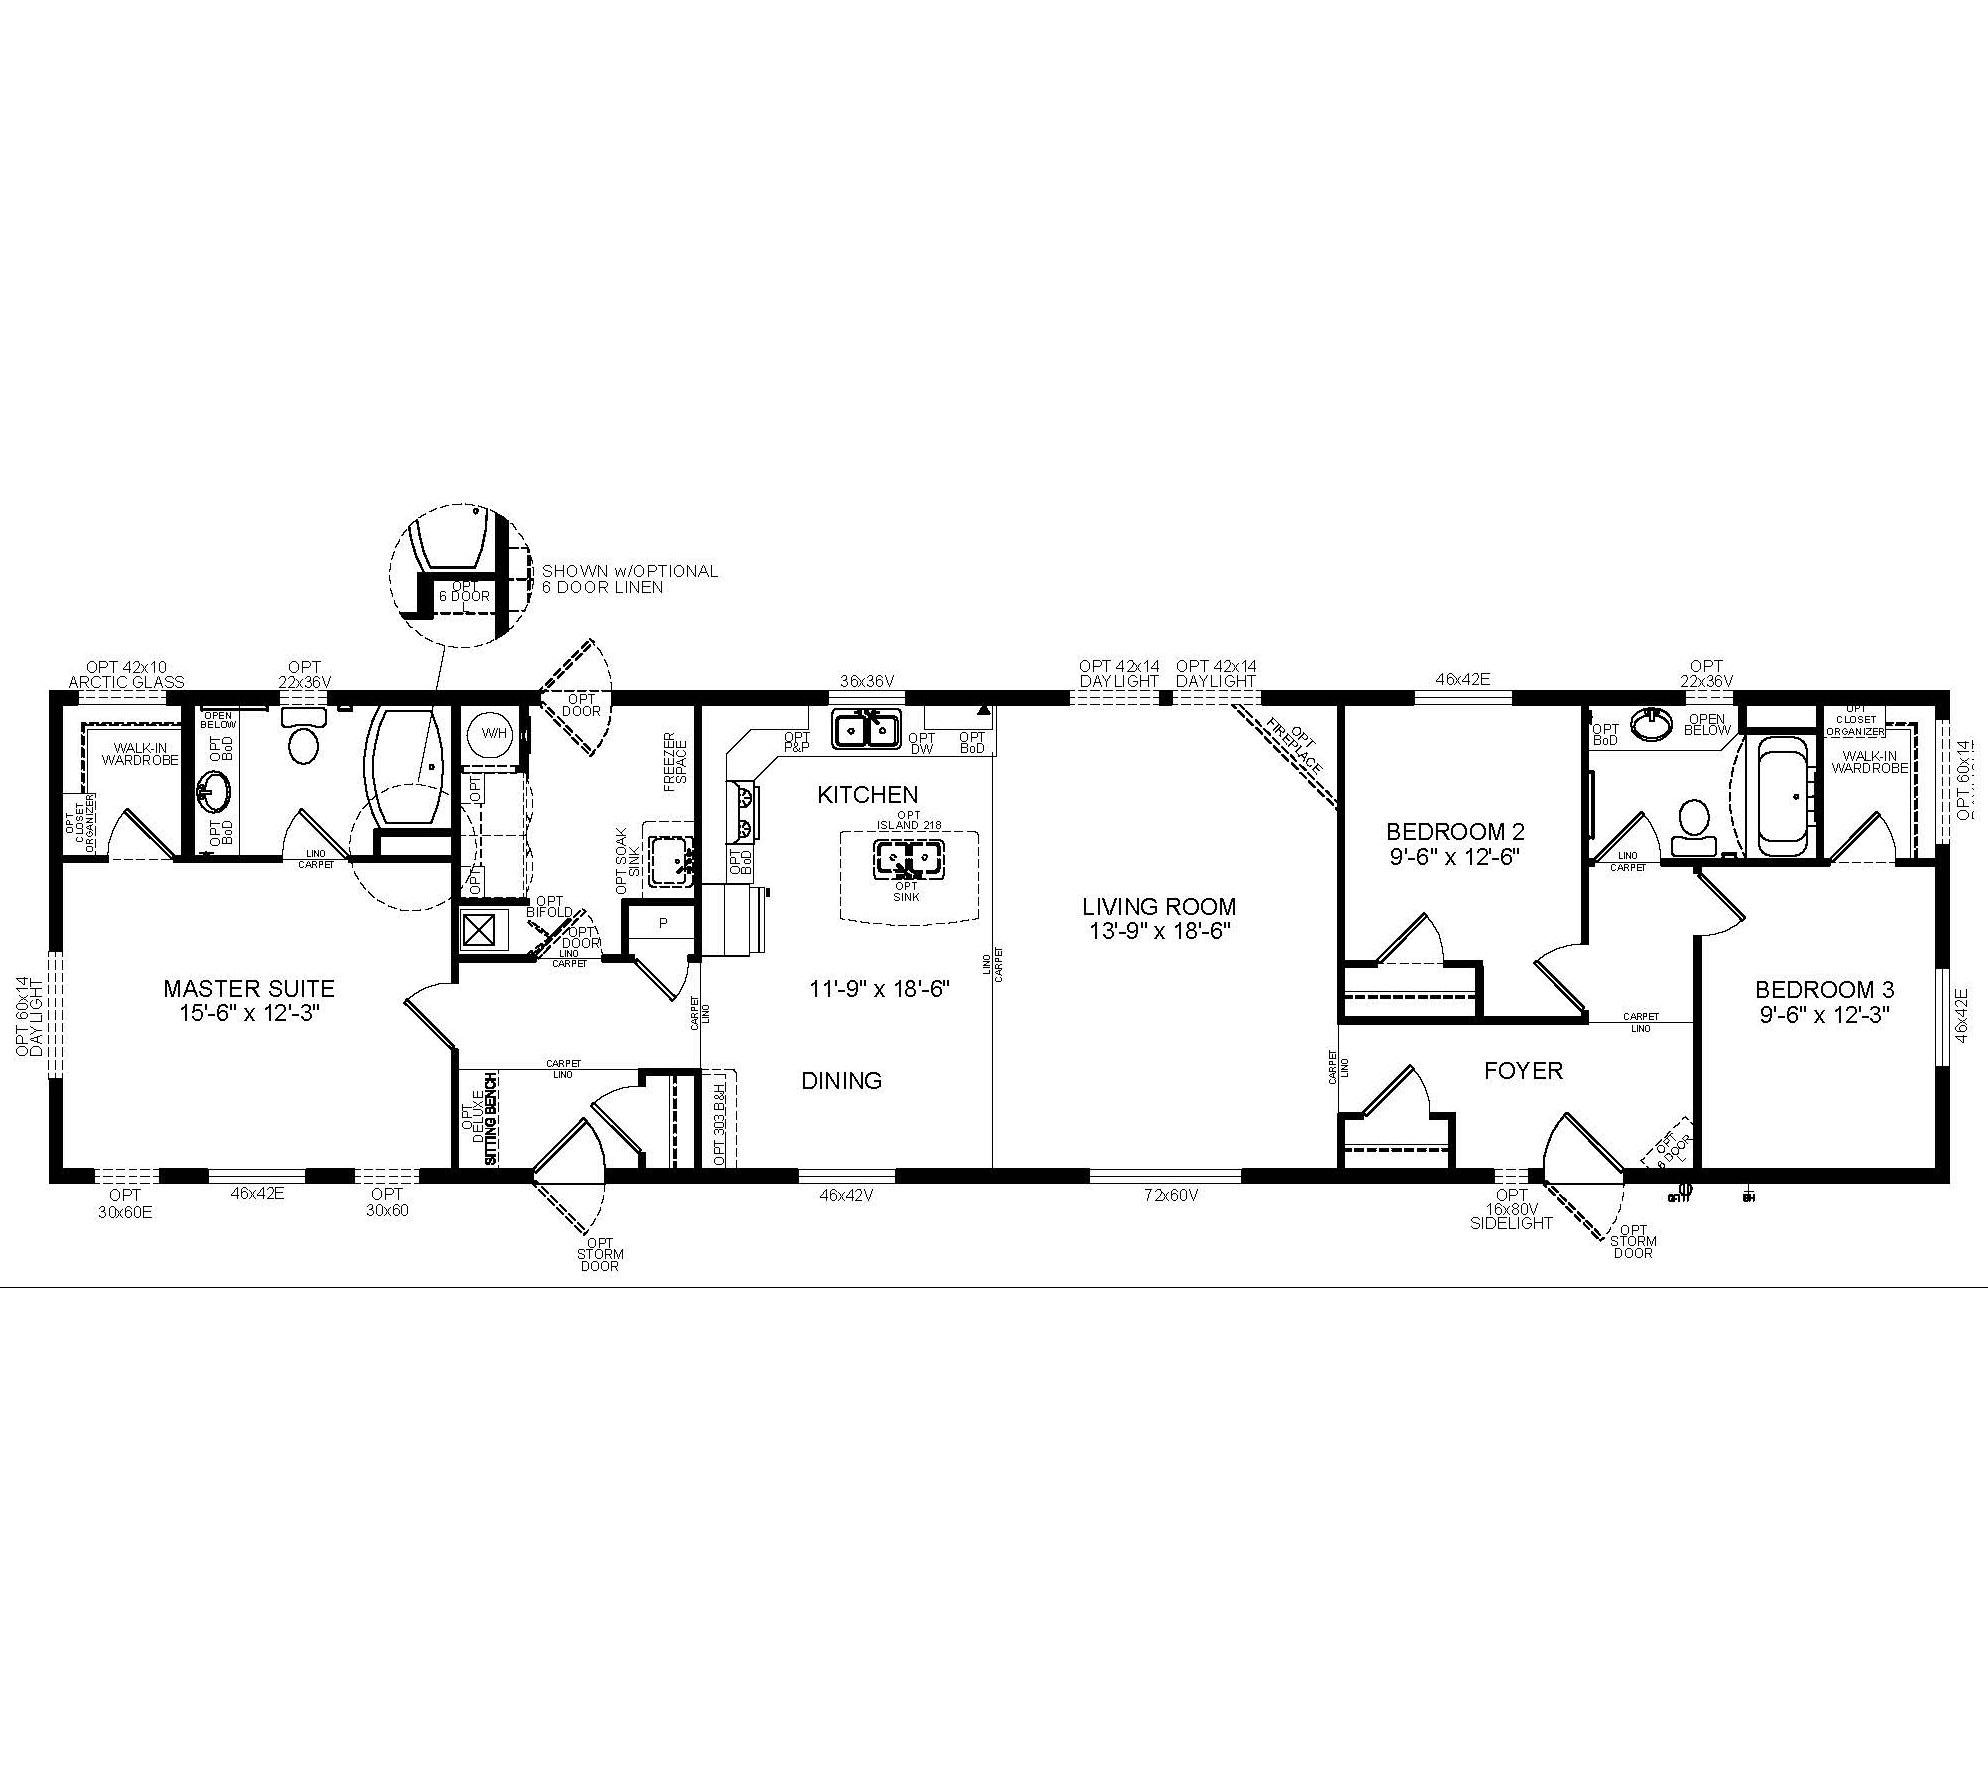 ST.PAUL-Floorplan.jpg